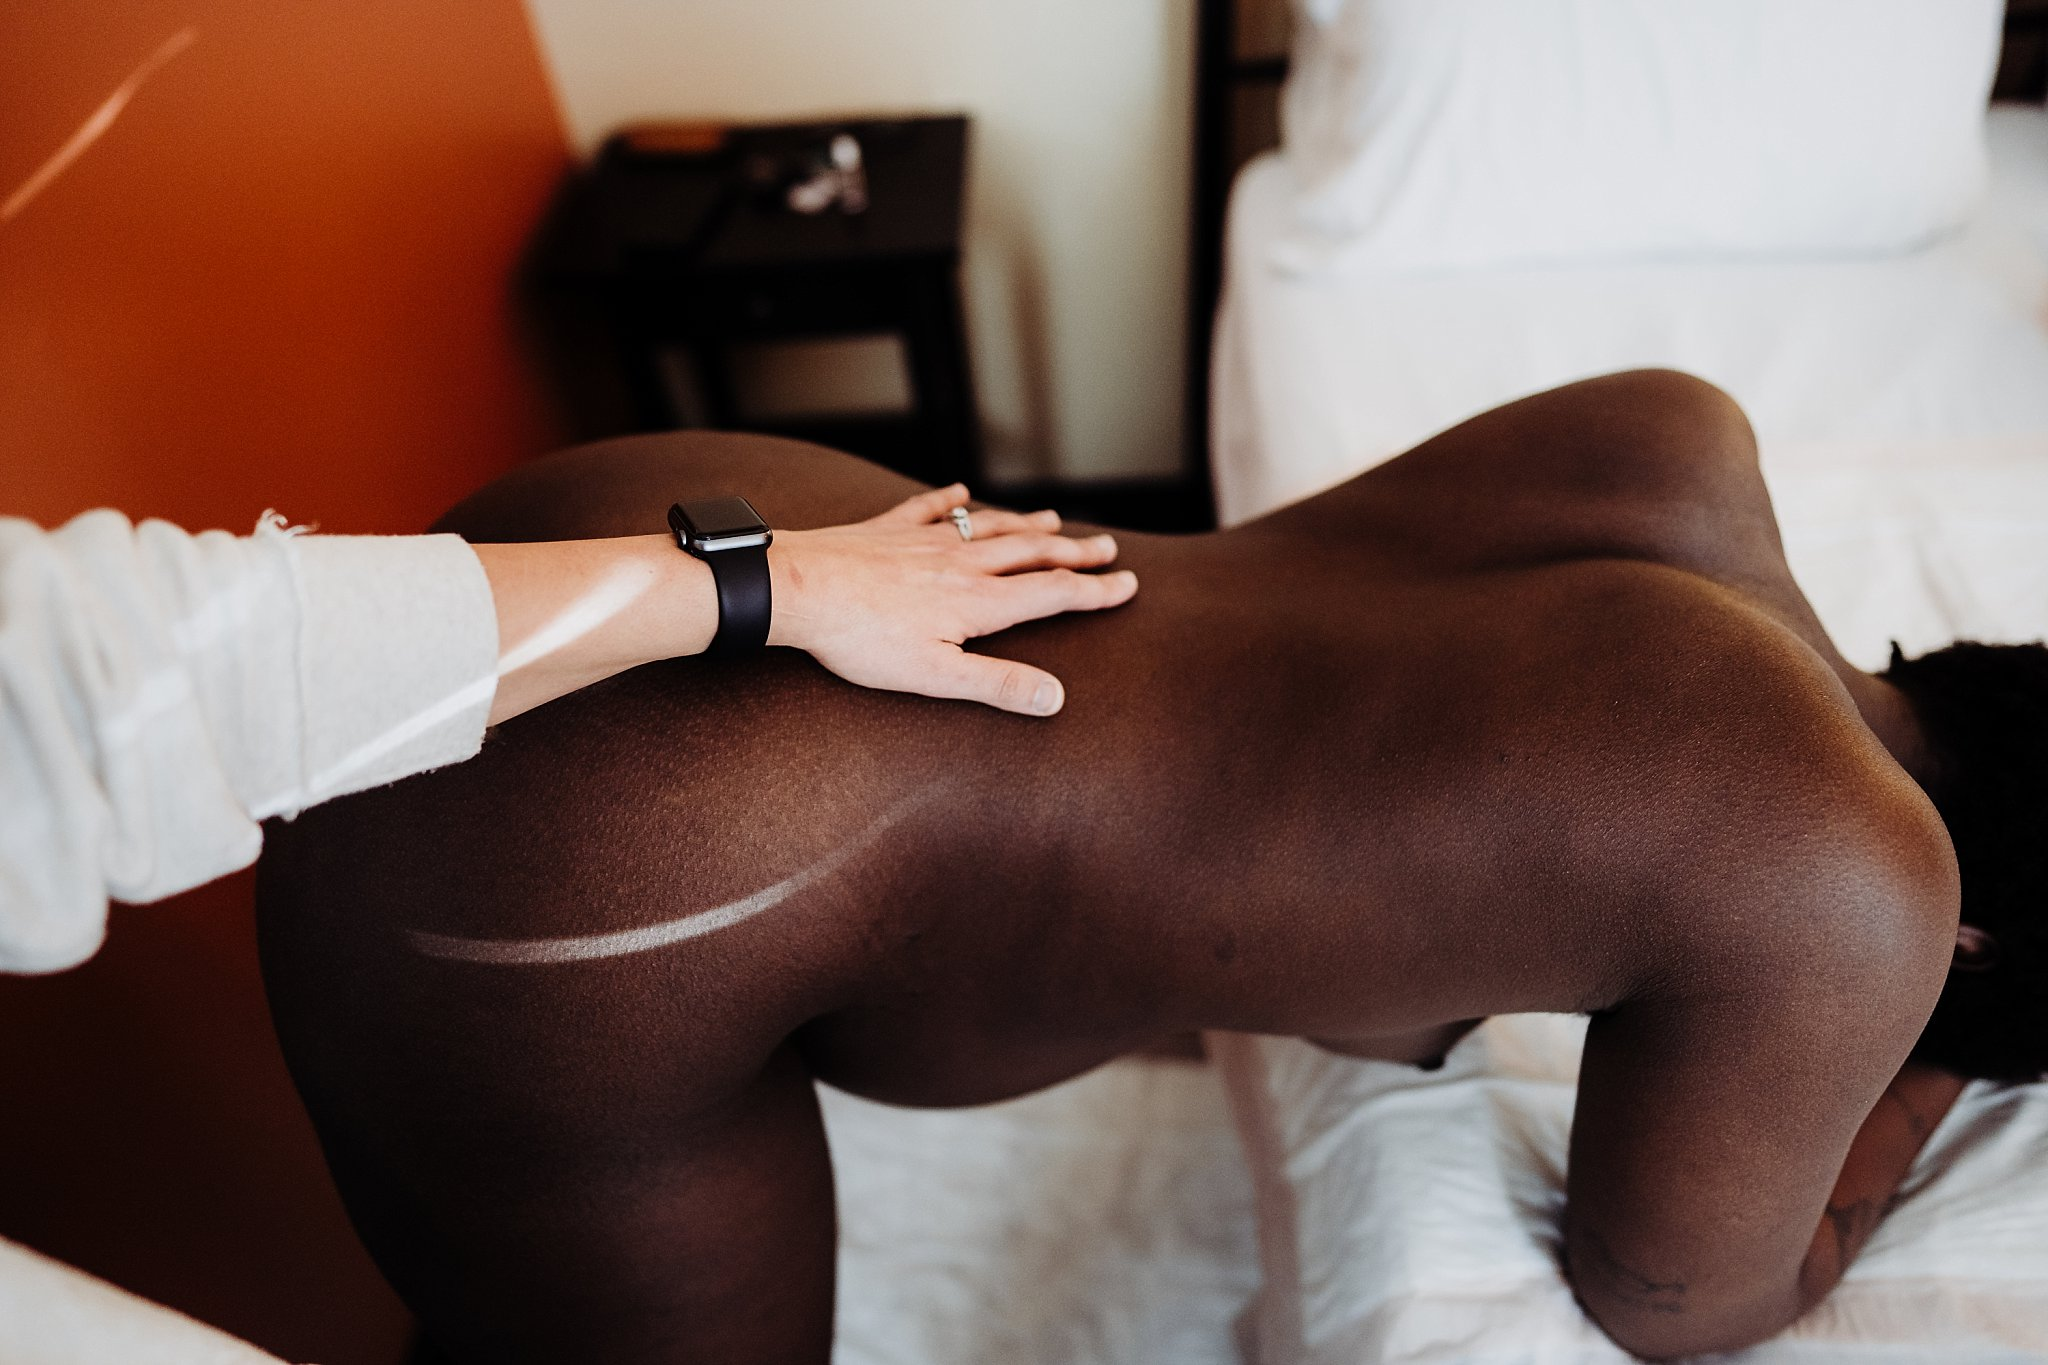 birthing person is leaning over the bed using her elbows for support. Her partner has her hand gently placed on the small of her back, a thin light strip from the window forming the shape around her hip